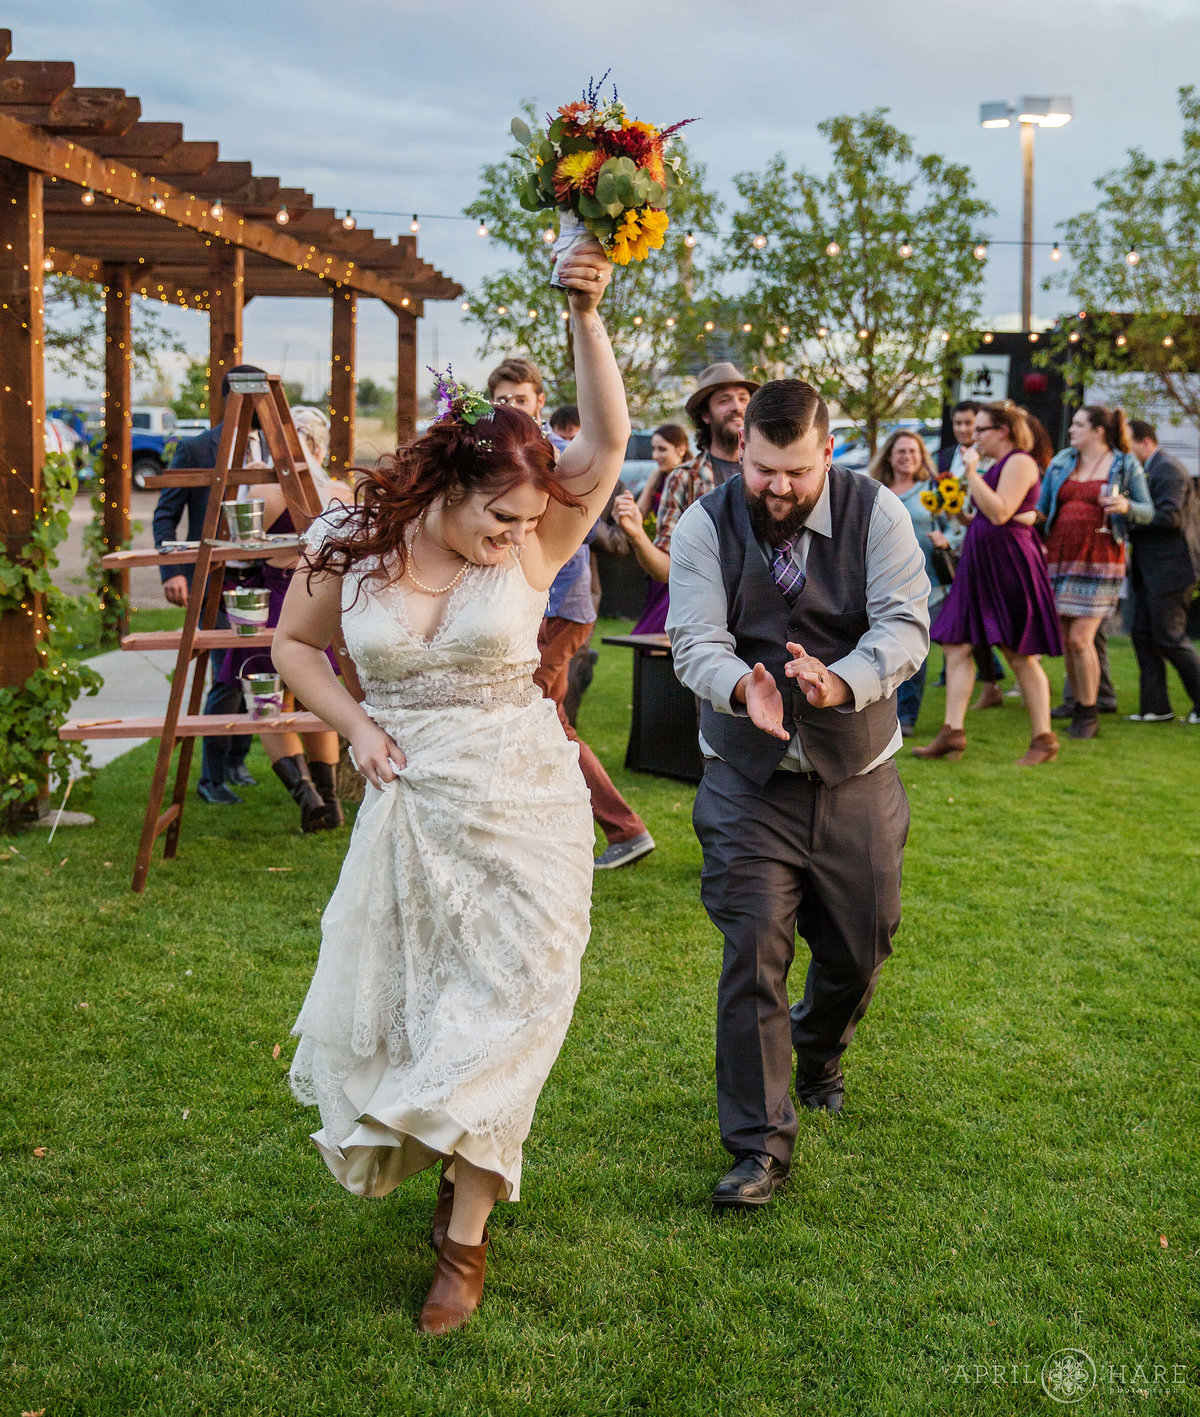 Celebrating at an outdoor Colorado wedding reception at Balistreri Vineyard